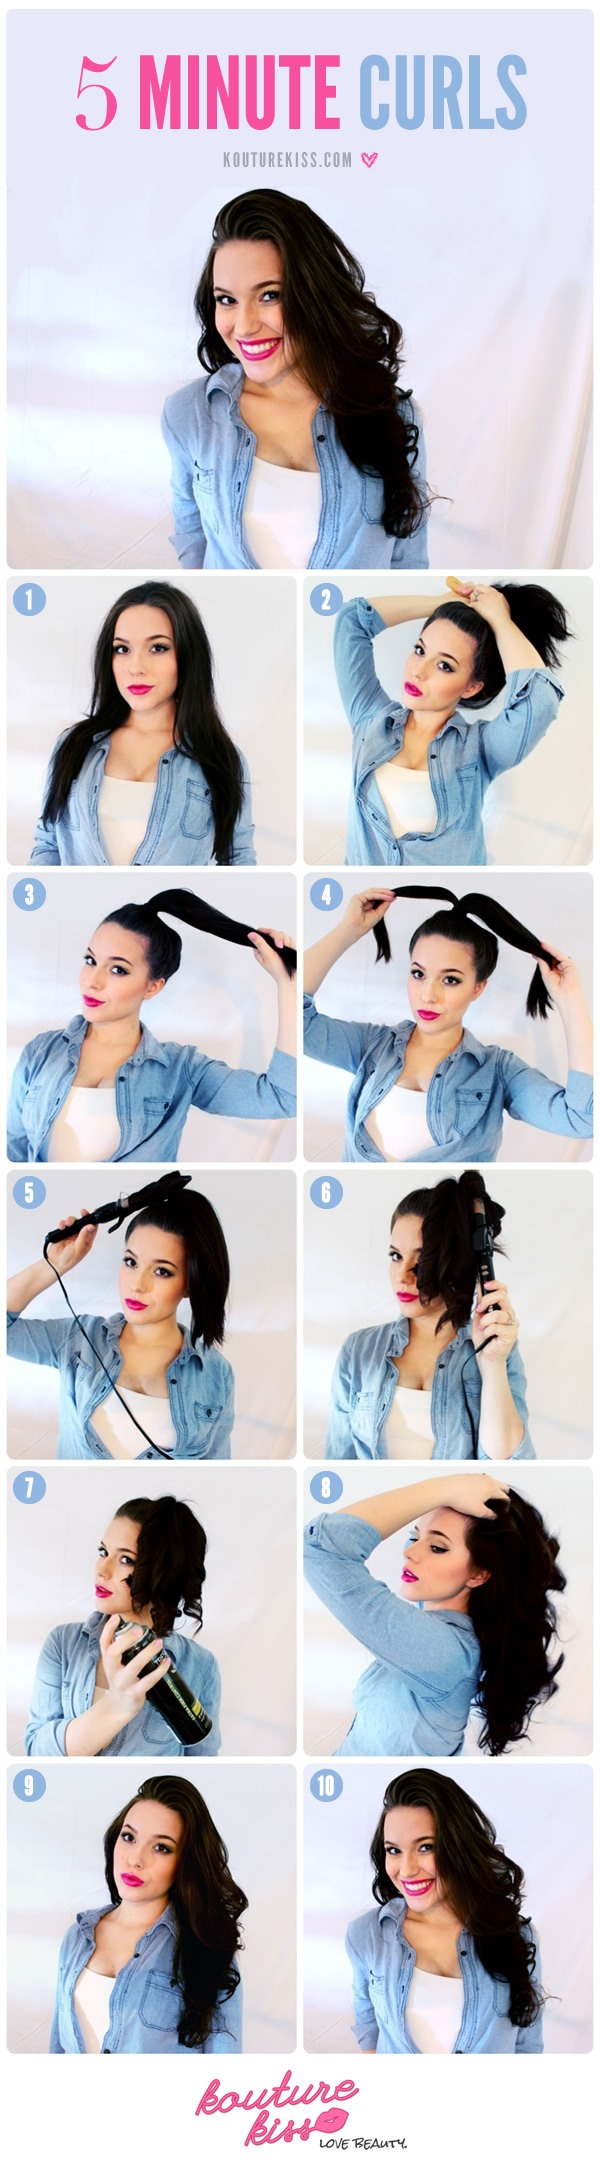 1: Begin with your hair in it's natural texture. I like to put a bit of heat protectant in my hair before I begin as well. 2,3: Pull your hair back into a high ponytail. It doesn't need to be perfect, just make sure there aren't too many bumps and it is as high on your head as you can it while clea